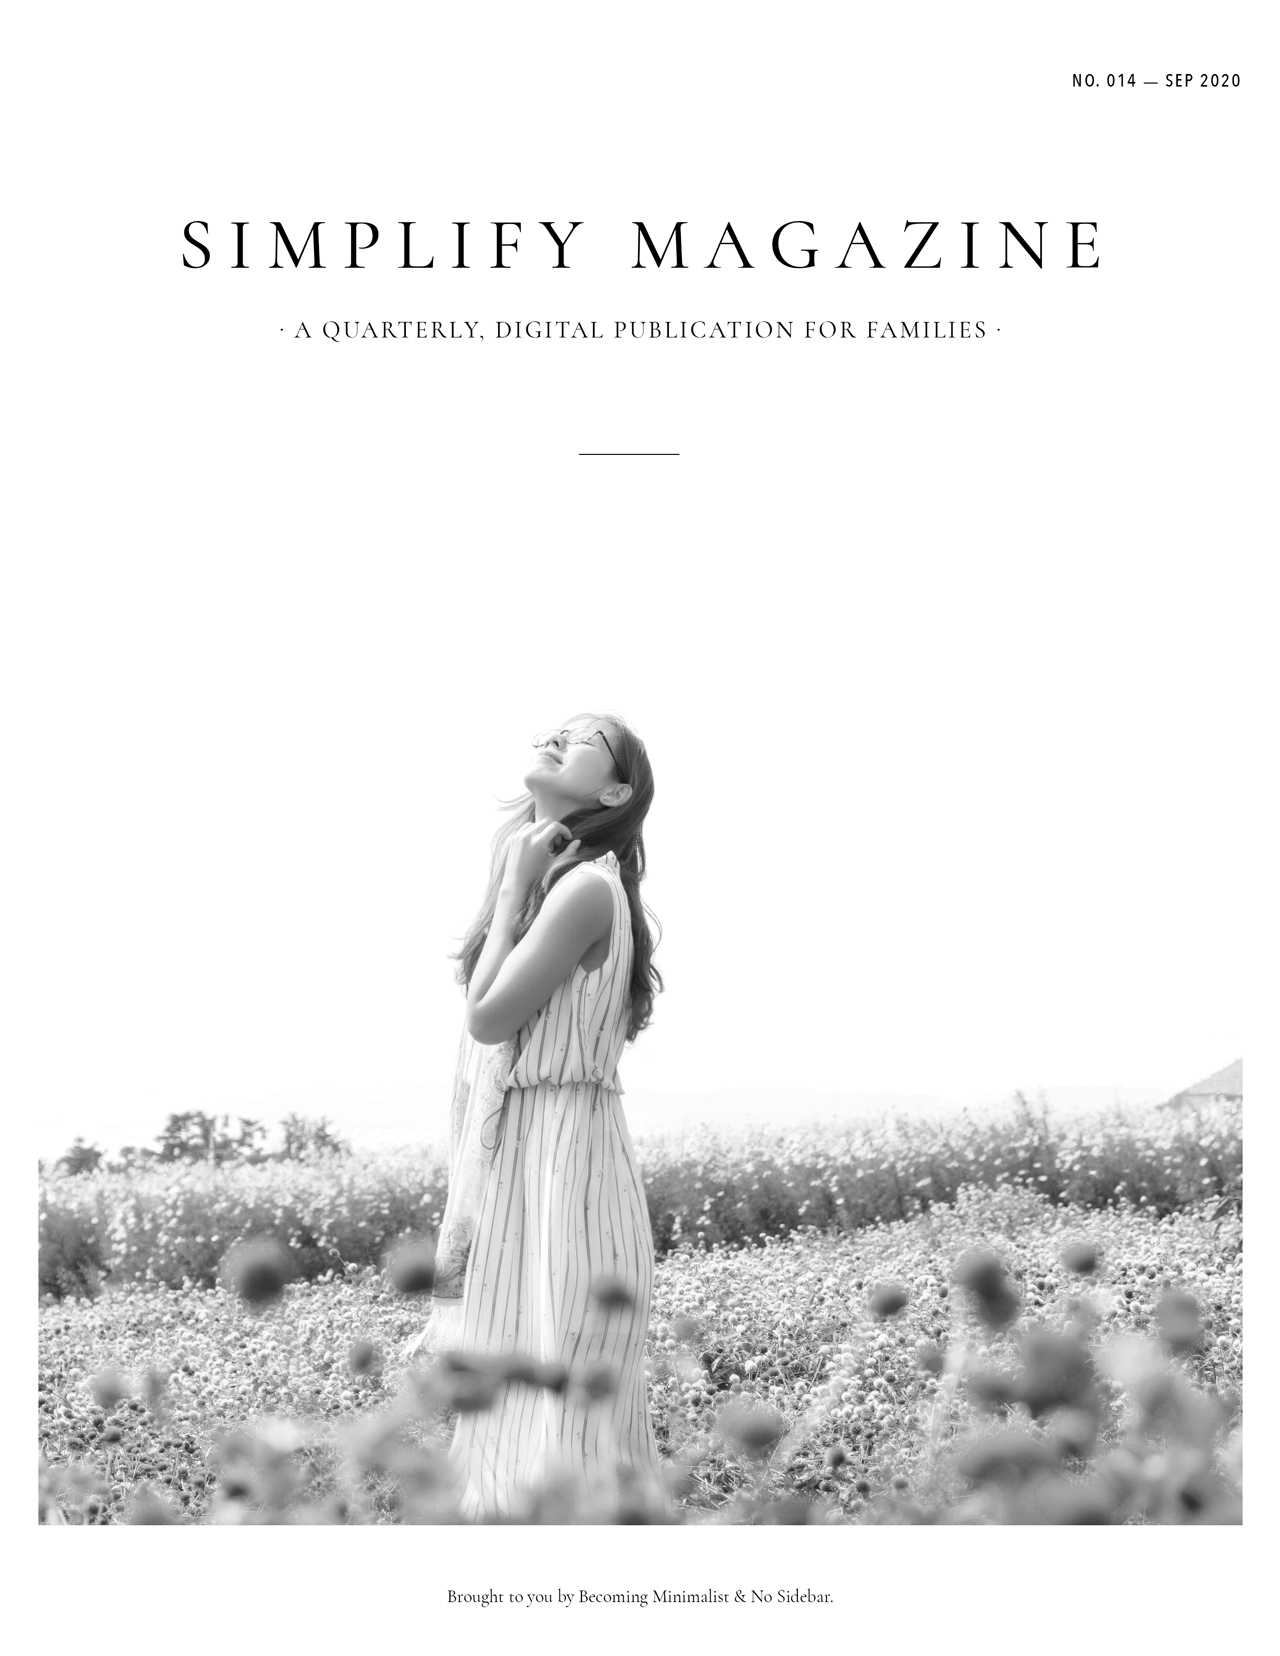 Simplify Magazine Issue #014